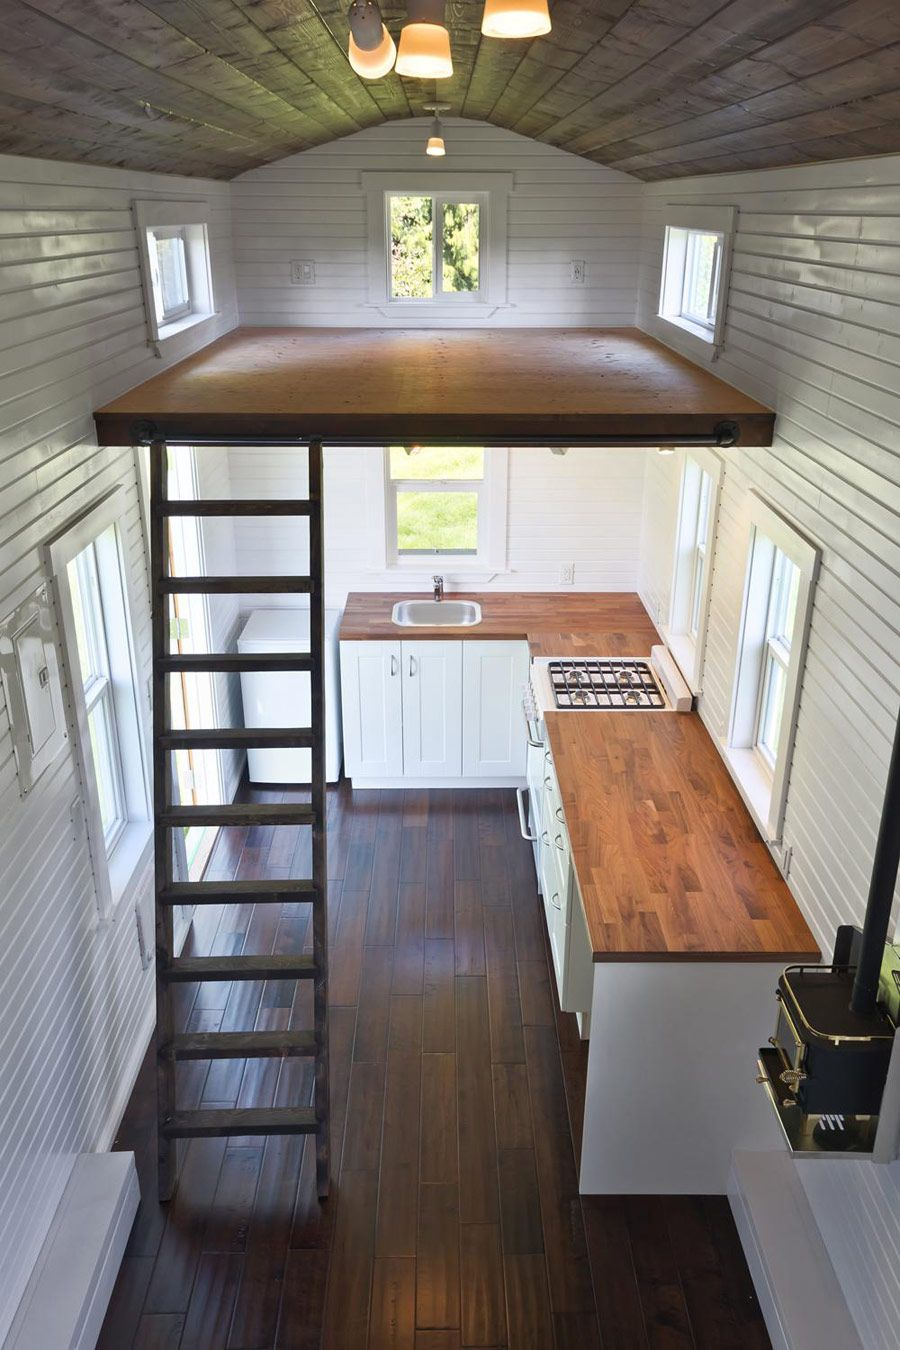 View toward kitchen the alpha tiny home by new frontier tiny homes - Modern Tiny House Interior